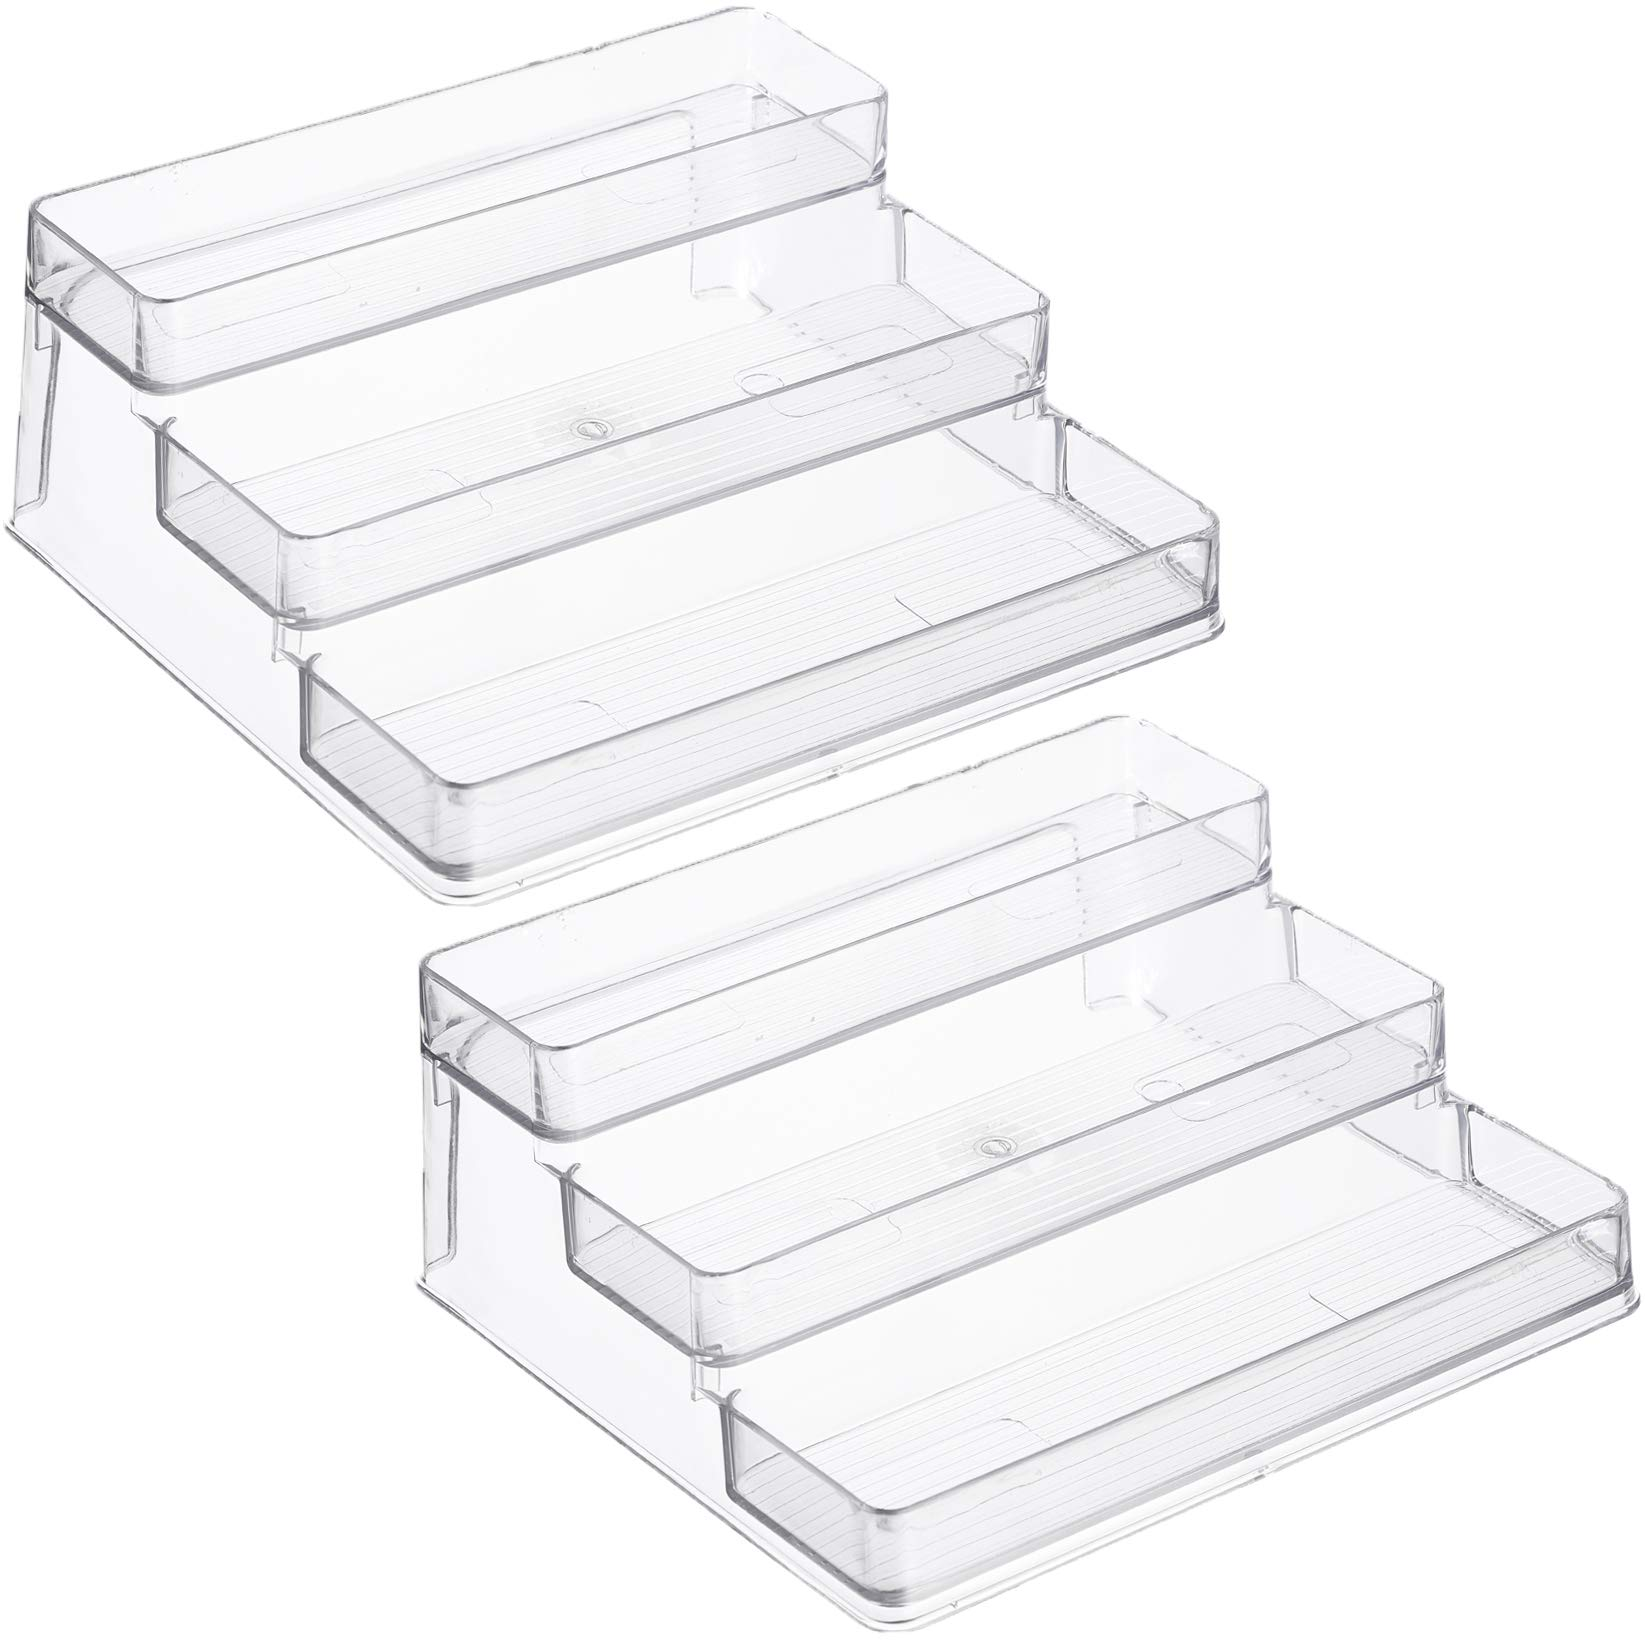 Home Intuition 3-Tier Spice Rack Step Shelf Cabinet Organizer, Clear (2) by Home Intuition